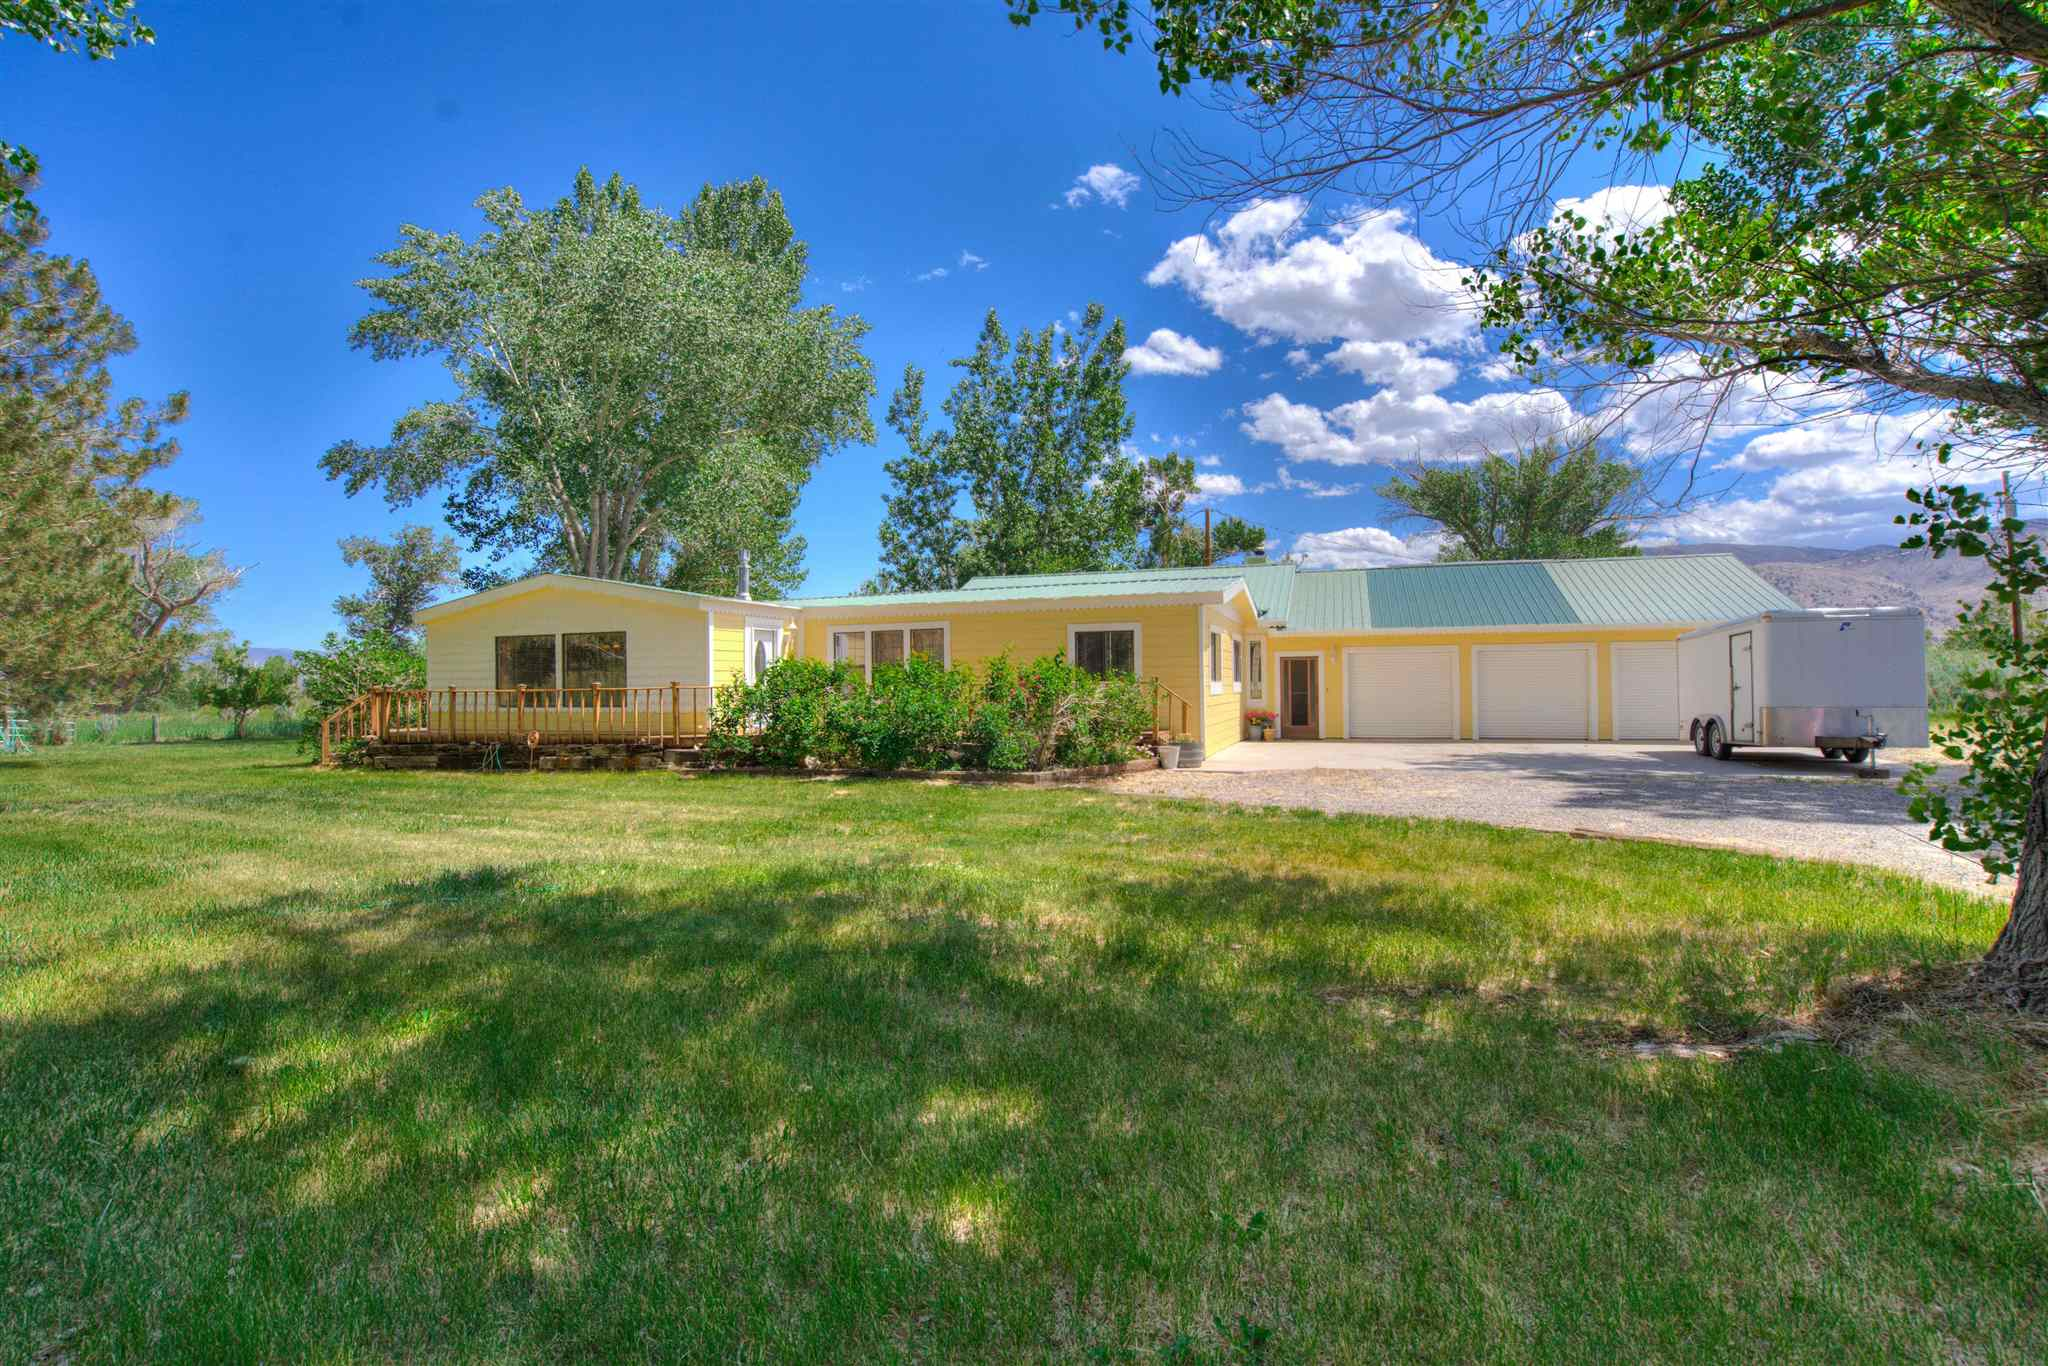 Stunning Ranch and Riverfront Property! Beautiful 3 bd, 2 ba home, 3 car attached garage, an mans dream workshop (32x36),  barn, fenced and cross fenced pasture and river frontage.  The home features an oversize custom Italian theme gourmet kitchen with large island and bar to gather around while entertaining.  The kitchen has a separate wall featuring a coffee/snack bar area and all counters are gorgeous granite and finishes. 2 refrigerators. washer and dryer are included.  Custom Hardwood cabinetry with pantry, spice shelves, and many special details. Adjacent Informal dining area has a gas log fireplace and a full wall Wine Bar and cabinetry.   You will also find a large formal dining room with views of the ranch and lovely faux copper ceilings add to the ambiance.  The features a well designed Victorian living room, with picture windows and treatments and a separate entry hall.  In addition to the living room, this home has a country family room (800 s.f.)  with gorgeous rock wall and wood stove. The entertainment center stays with the home.  This lovely space could be your    office and game room, hobby room, or man cave.  The home has custom touches of wall paper, chair rail, crown molding, pine wood ceilings  The Master Bedroom features custom wall paper and chandelier, double French doors leading to the front /side deck where you can enjoy your morning coffee and take in the fresh mountain air.  Also features a walk in closet with special shelving.  The Master bath features a gorgeous Victorian pedestal tub and enclosed powder room.  This home has many details and design that is so hard to find.   The pride of ownership shows.     Exterior of home has just been repainted.   On the 5.45 acre ranch is fenced and cross fenced, has a barn and a special garden area full of roses, peonies and also a Gazebo. Great place to relax in the afternoon.  This home is a must see and a rare find.